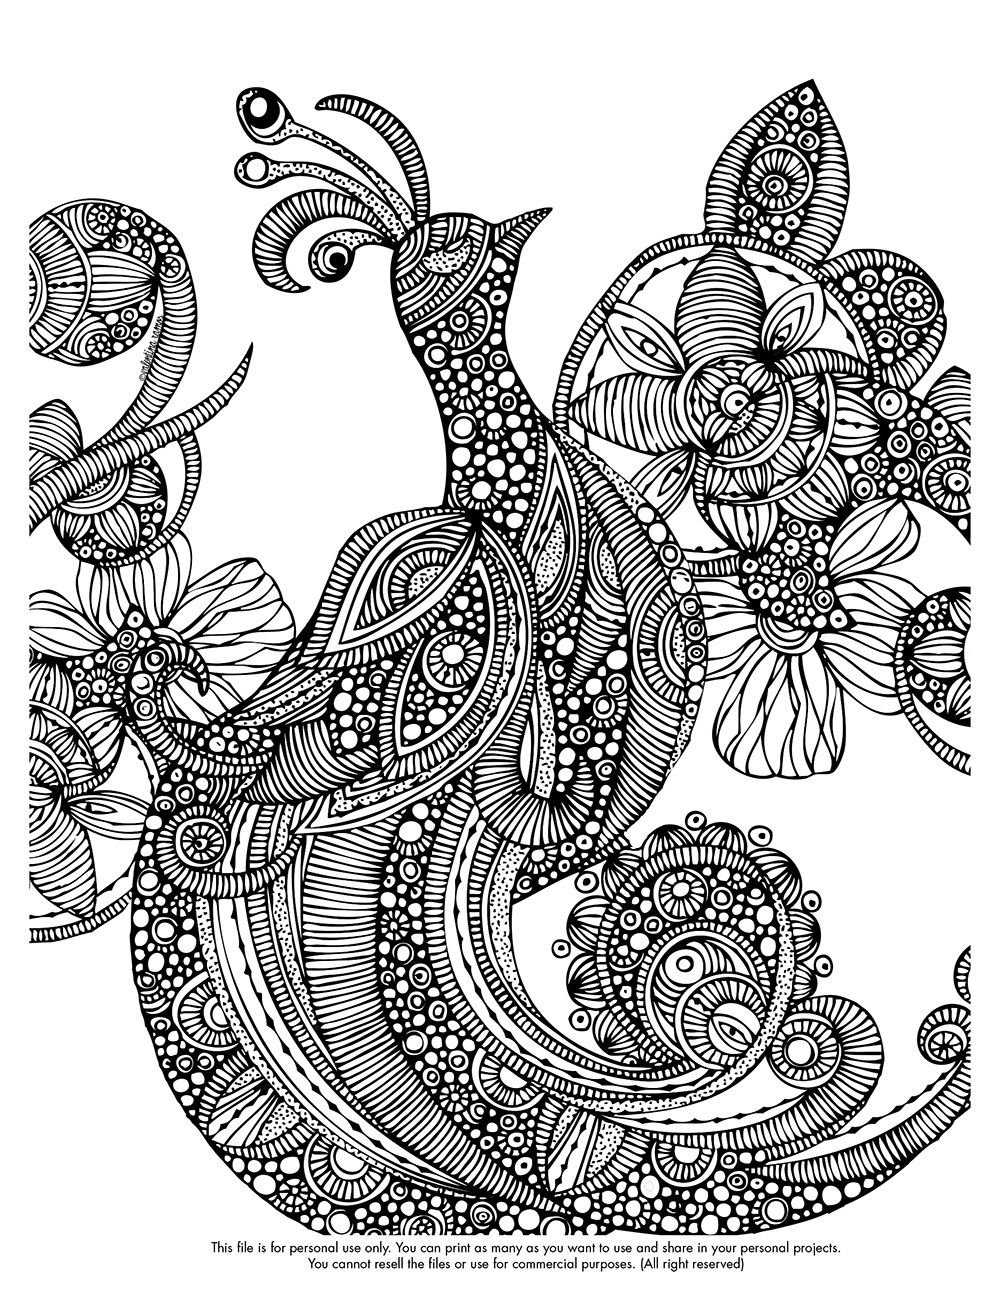 Happy Coloring Monday Here You Free Coloring Page Http Valentinadesign Com Images Printables Parad Coloring Pages Bird Coloring Pages Animal Coloring Pages